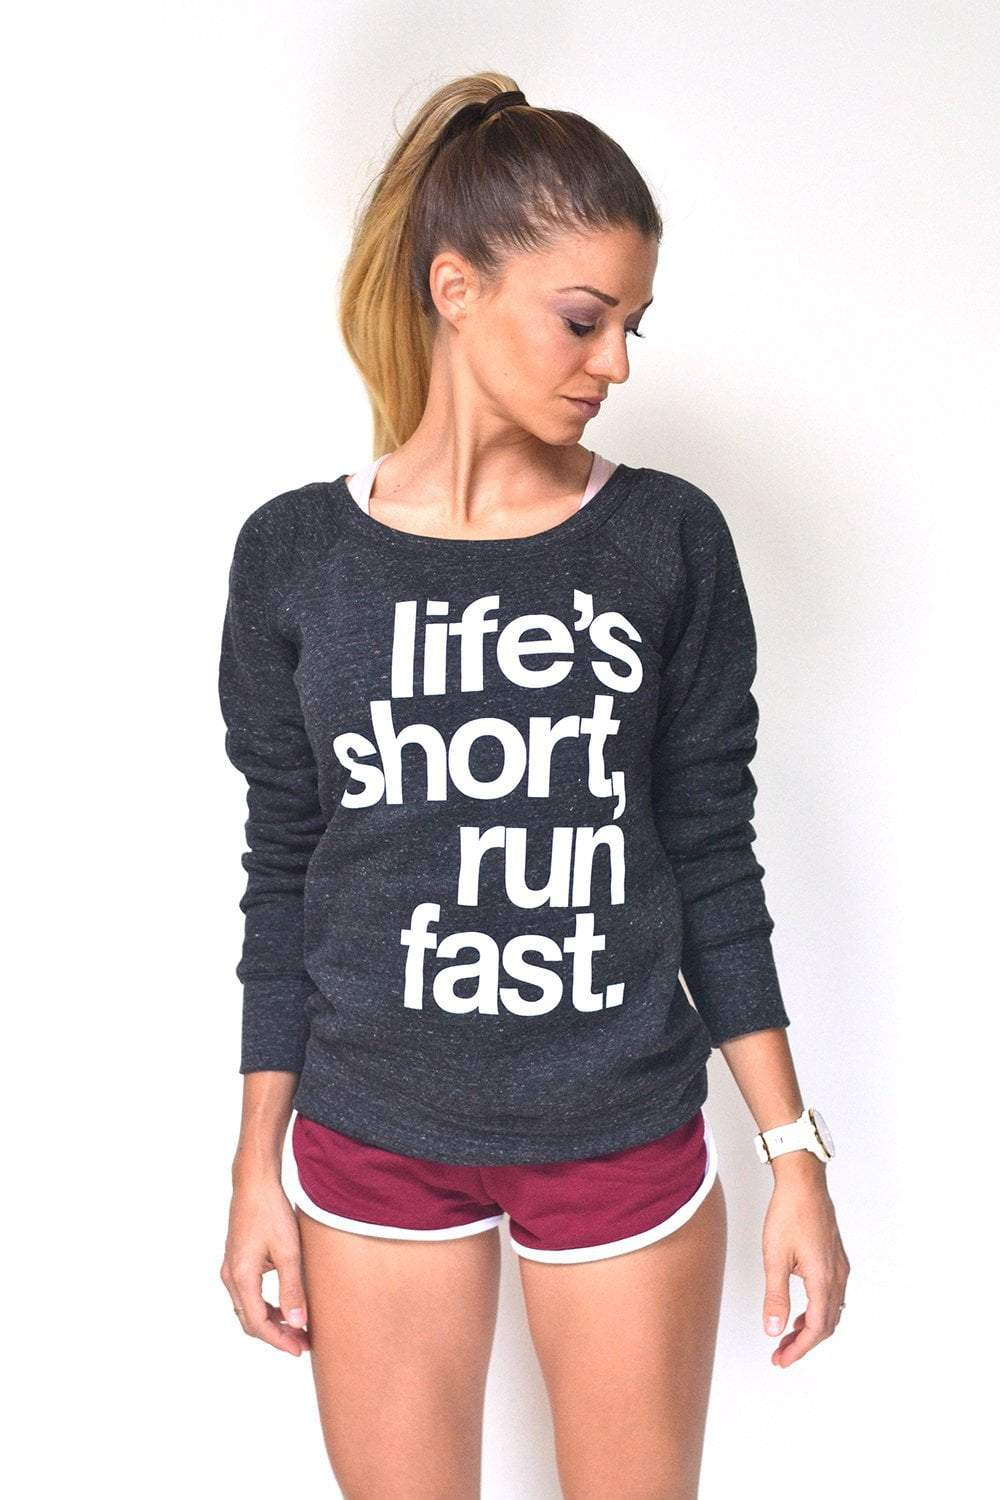 Life's Short, Run Fast. - Women's Sweatshirt - Sarah Marie Design Studio